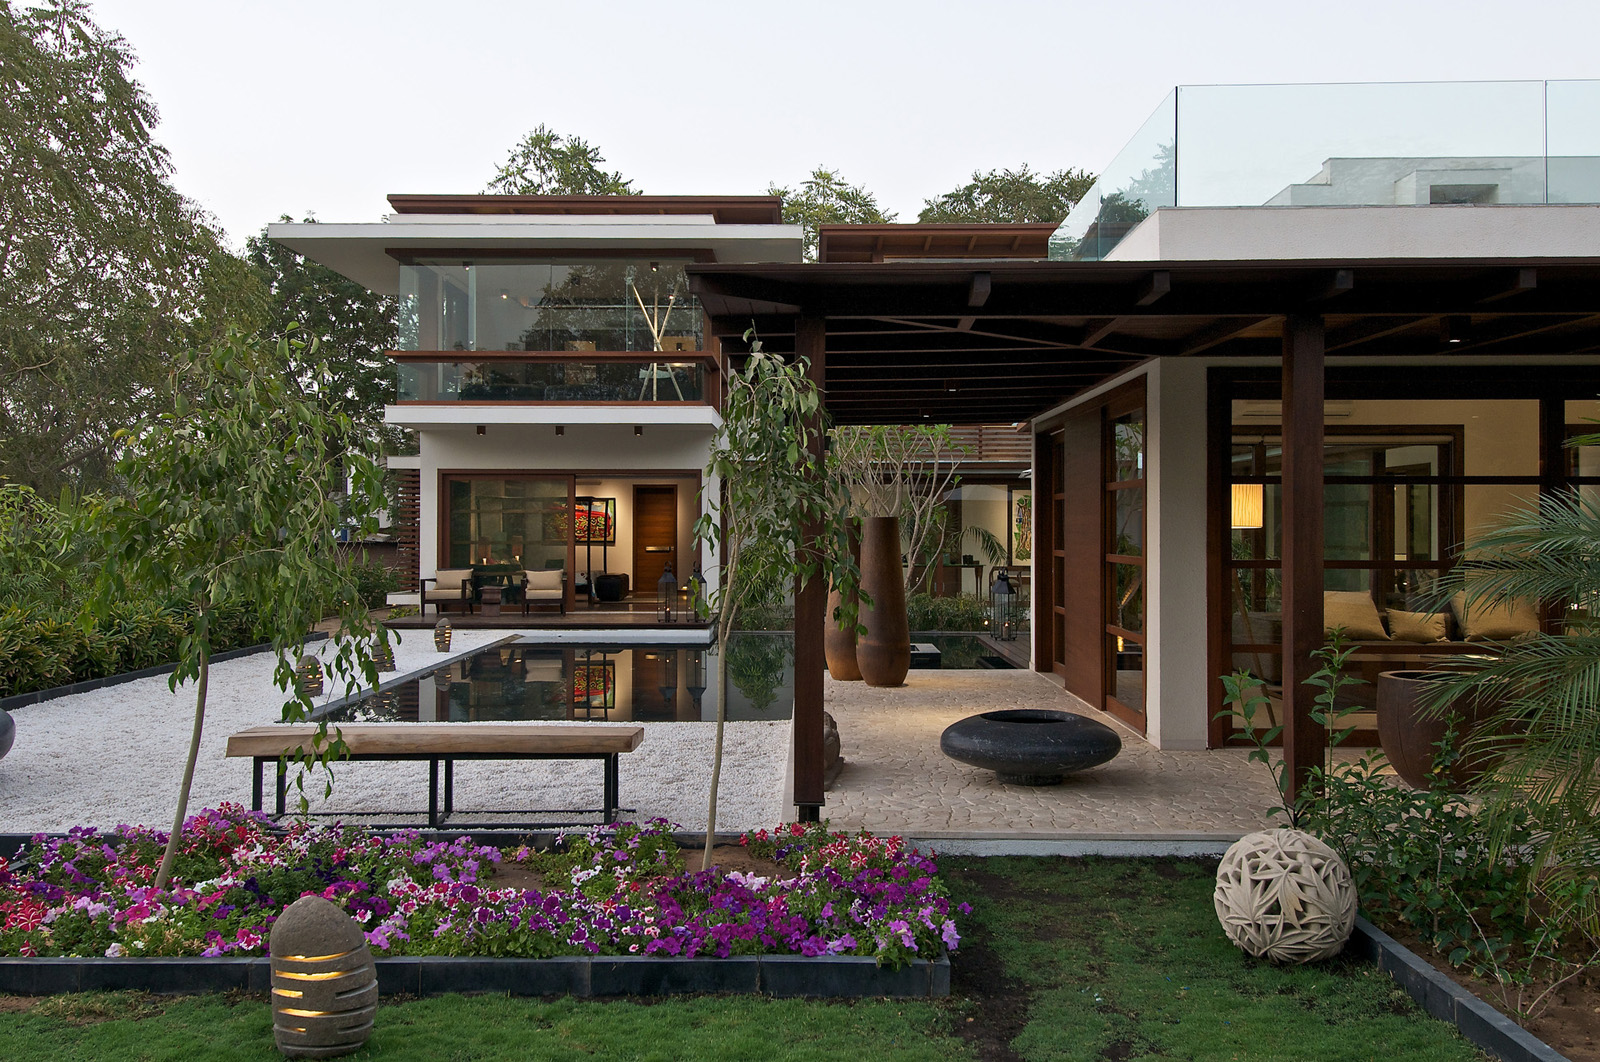 Timeless Contemporary House In India With Courtyard Zen Garden Idesignarch Interior Design Architecture Interior Decorating Emagazine